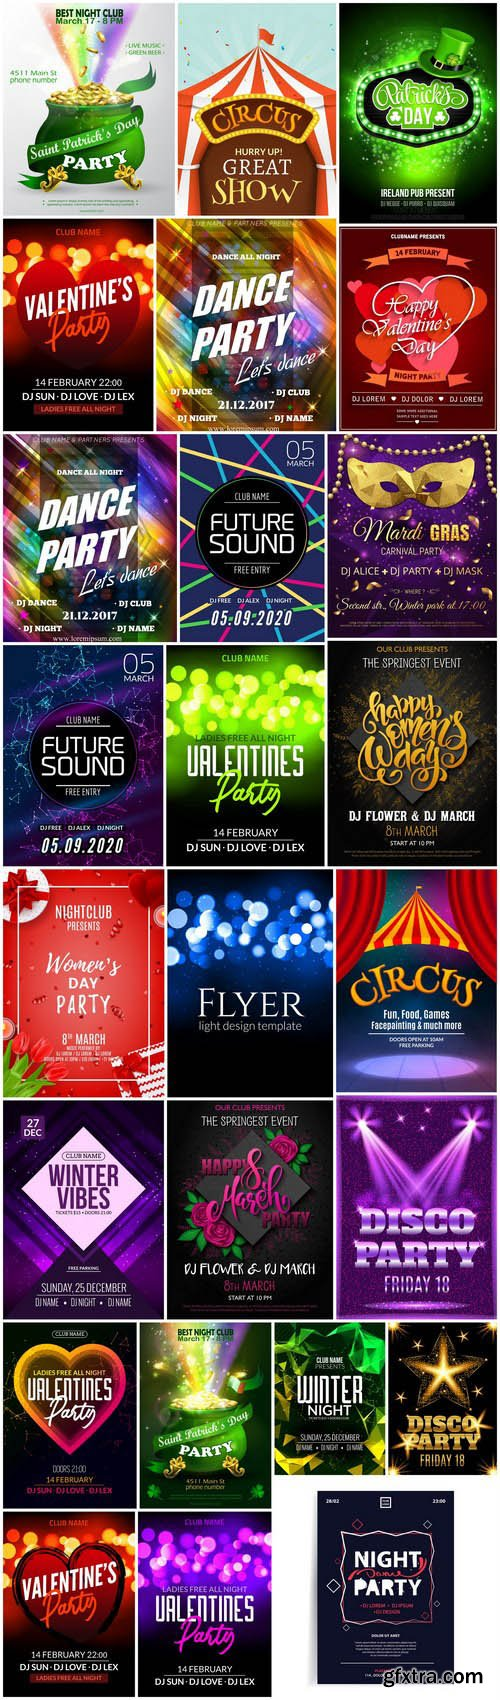 Different Party Flyer Template - 25 Vector